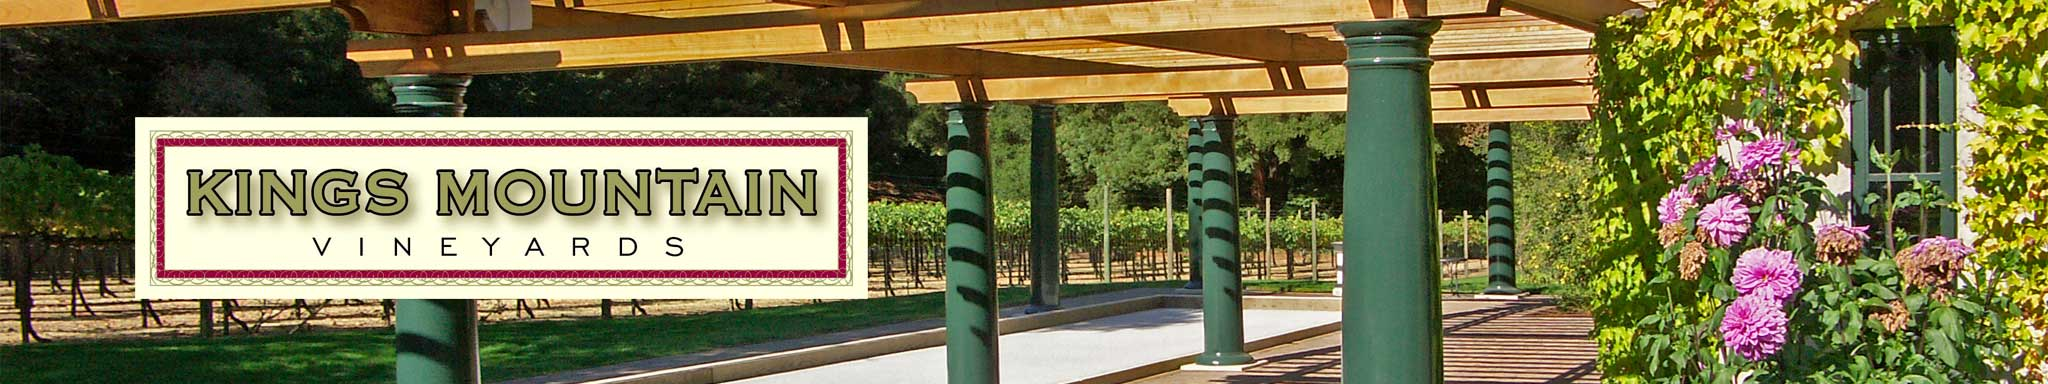 Kings Mountain Vineyards Logo Banner